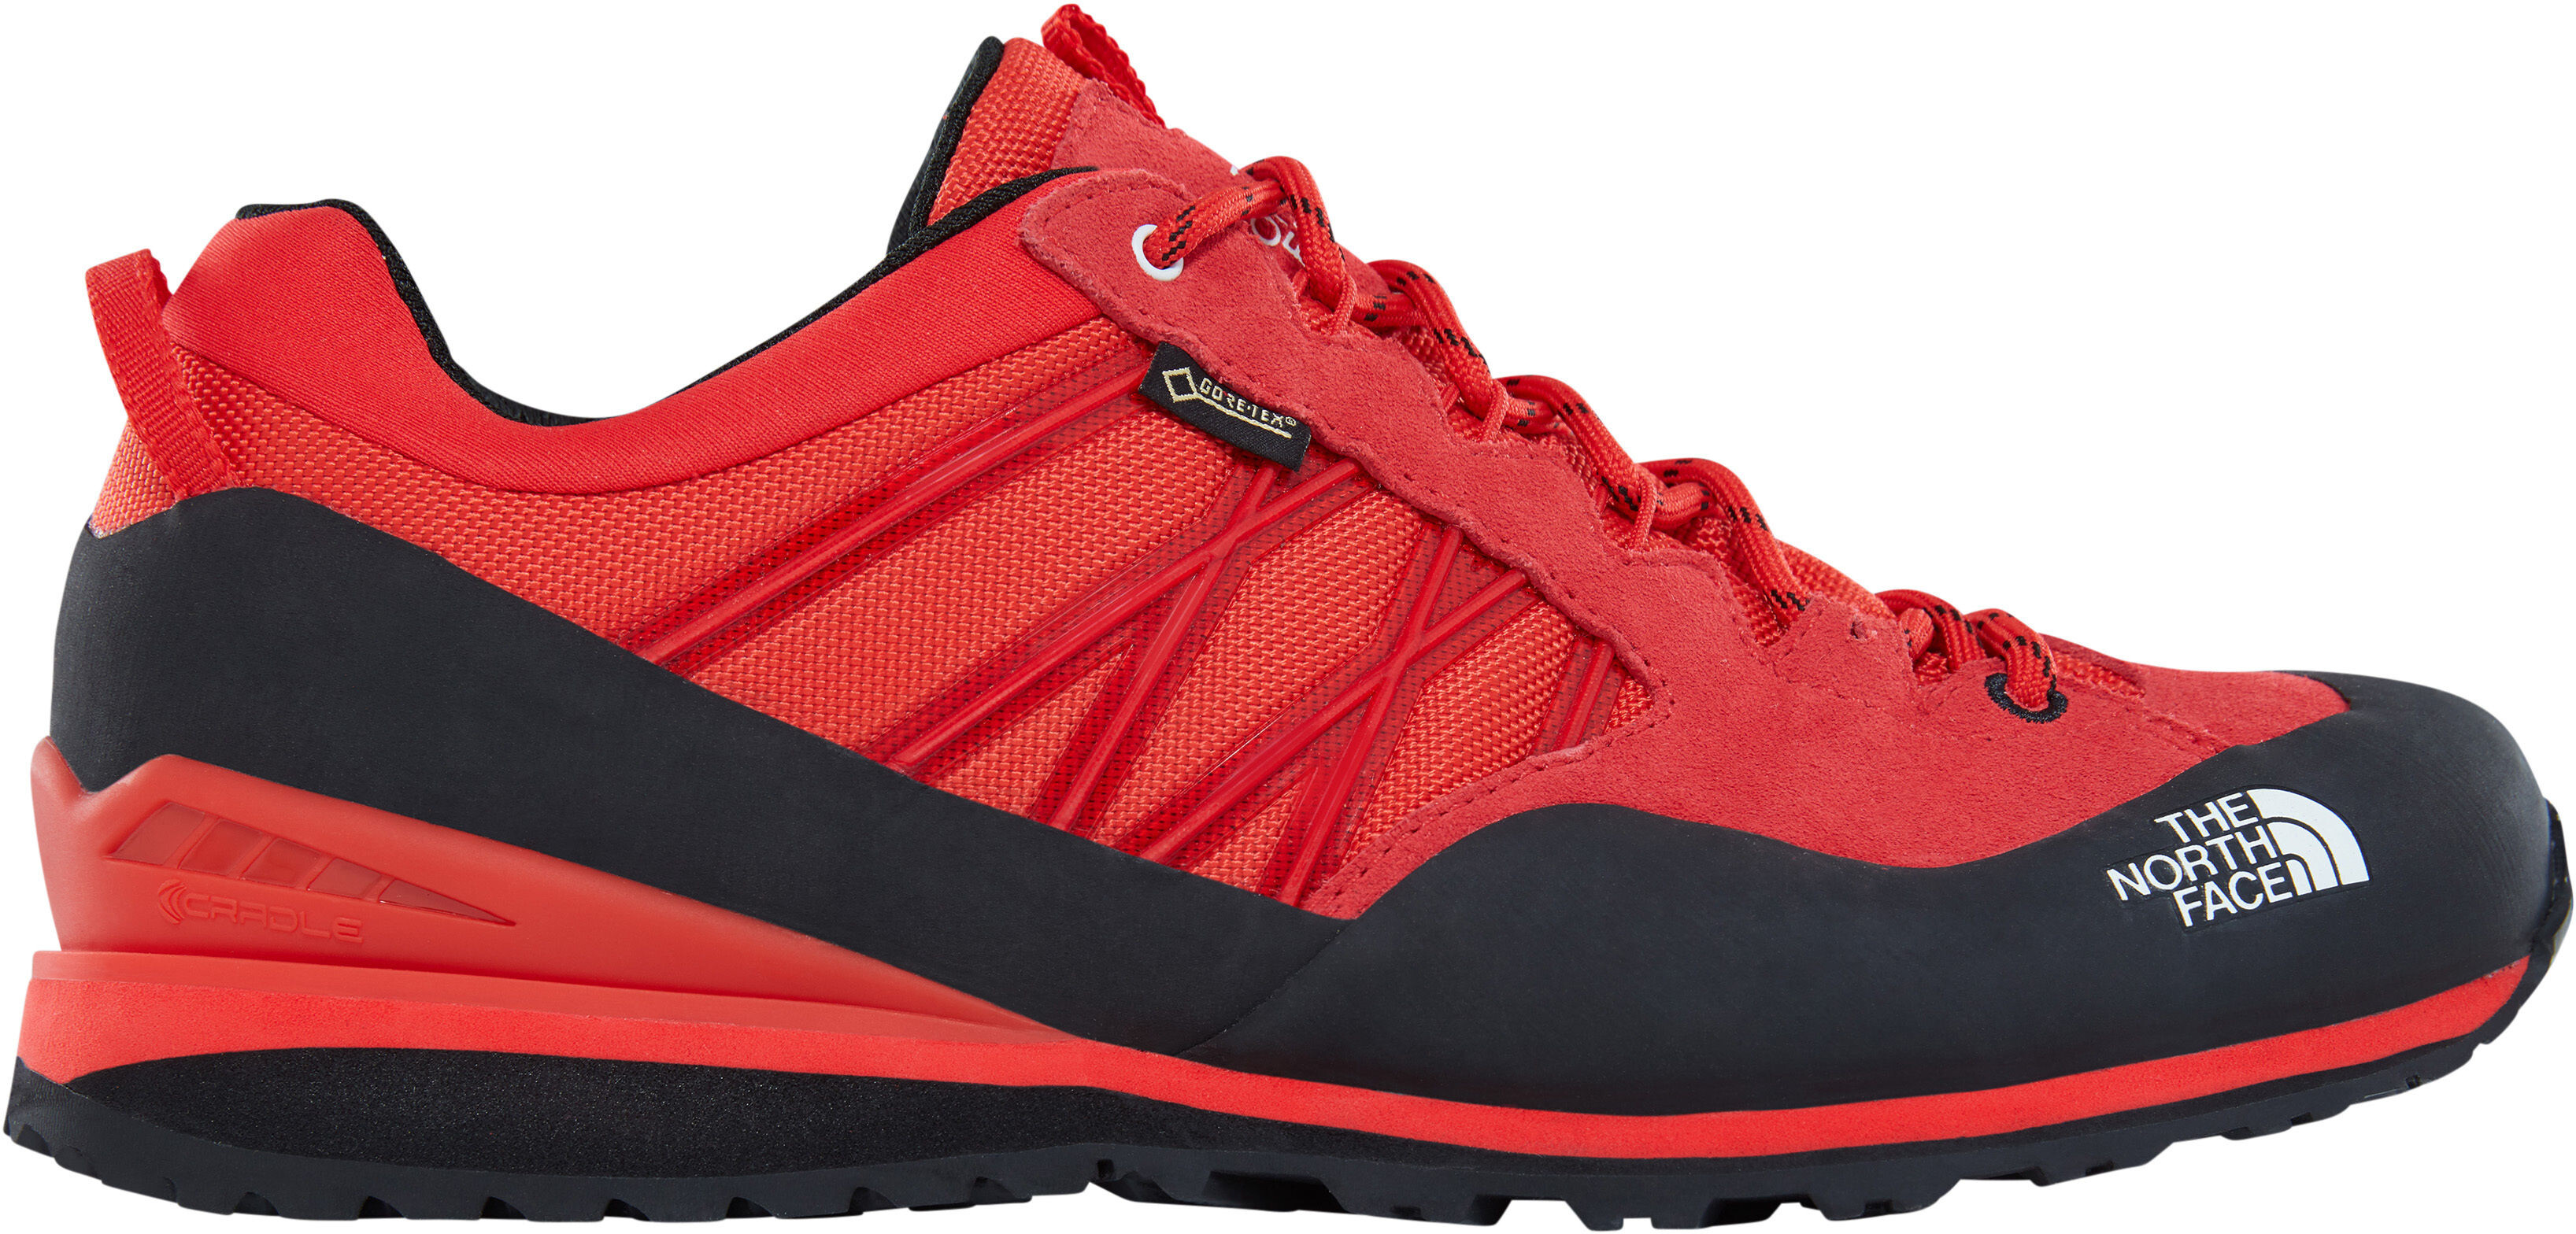 f216fe1a7c2 The North Face Verto Plasma 2 GTX Shoes Men red black at Addnature.co.uk